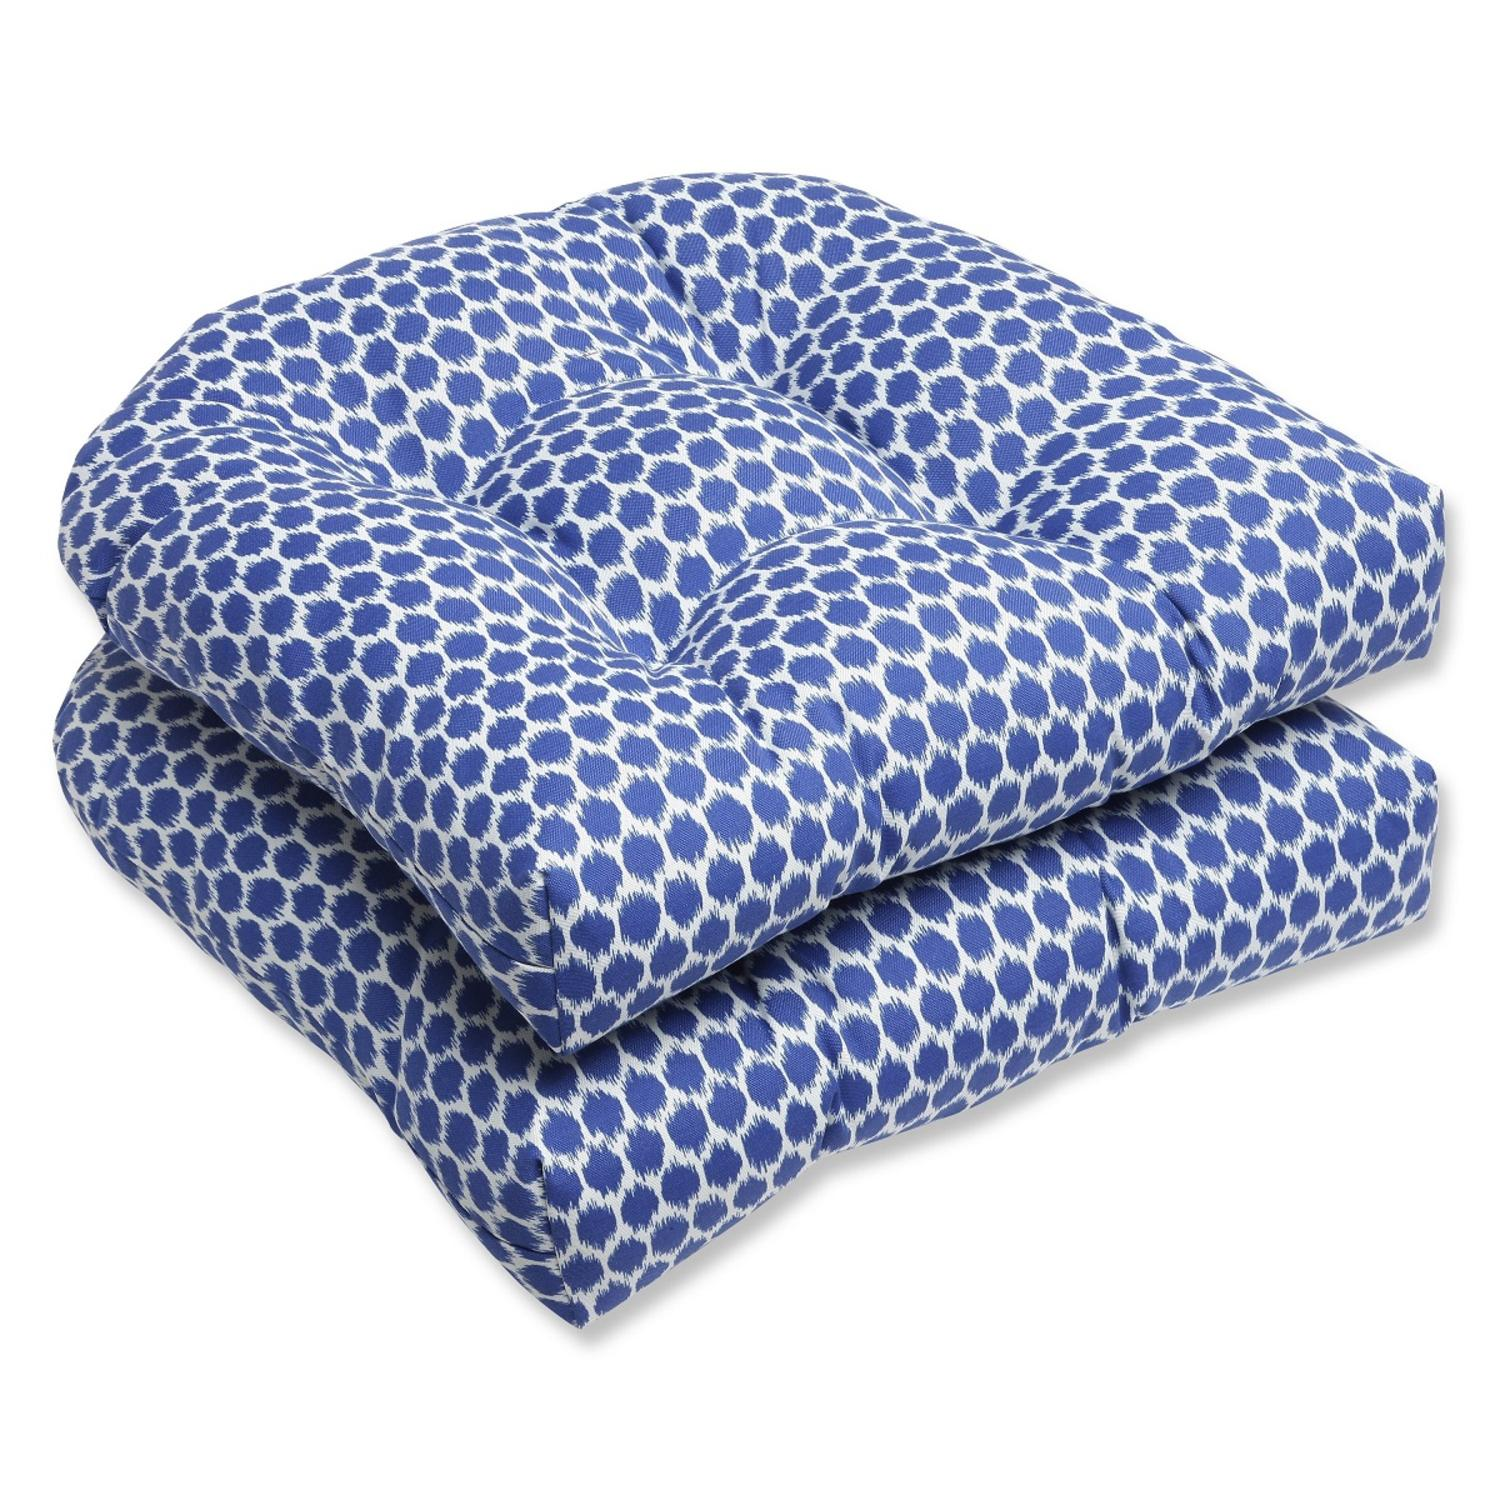 Set of 2 Ruche D'abeille Royal Blue and White Outdoor Patio Wicker Chair Cushions 19""